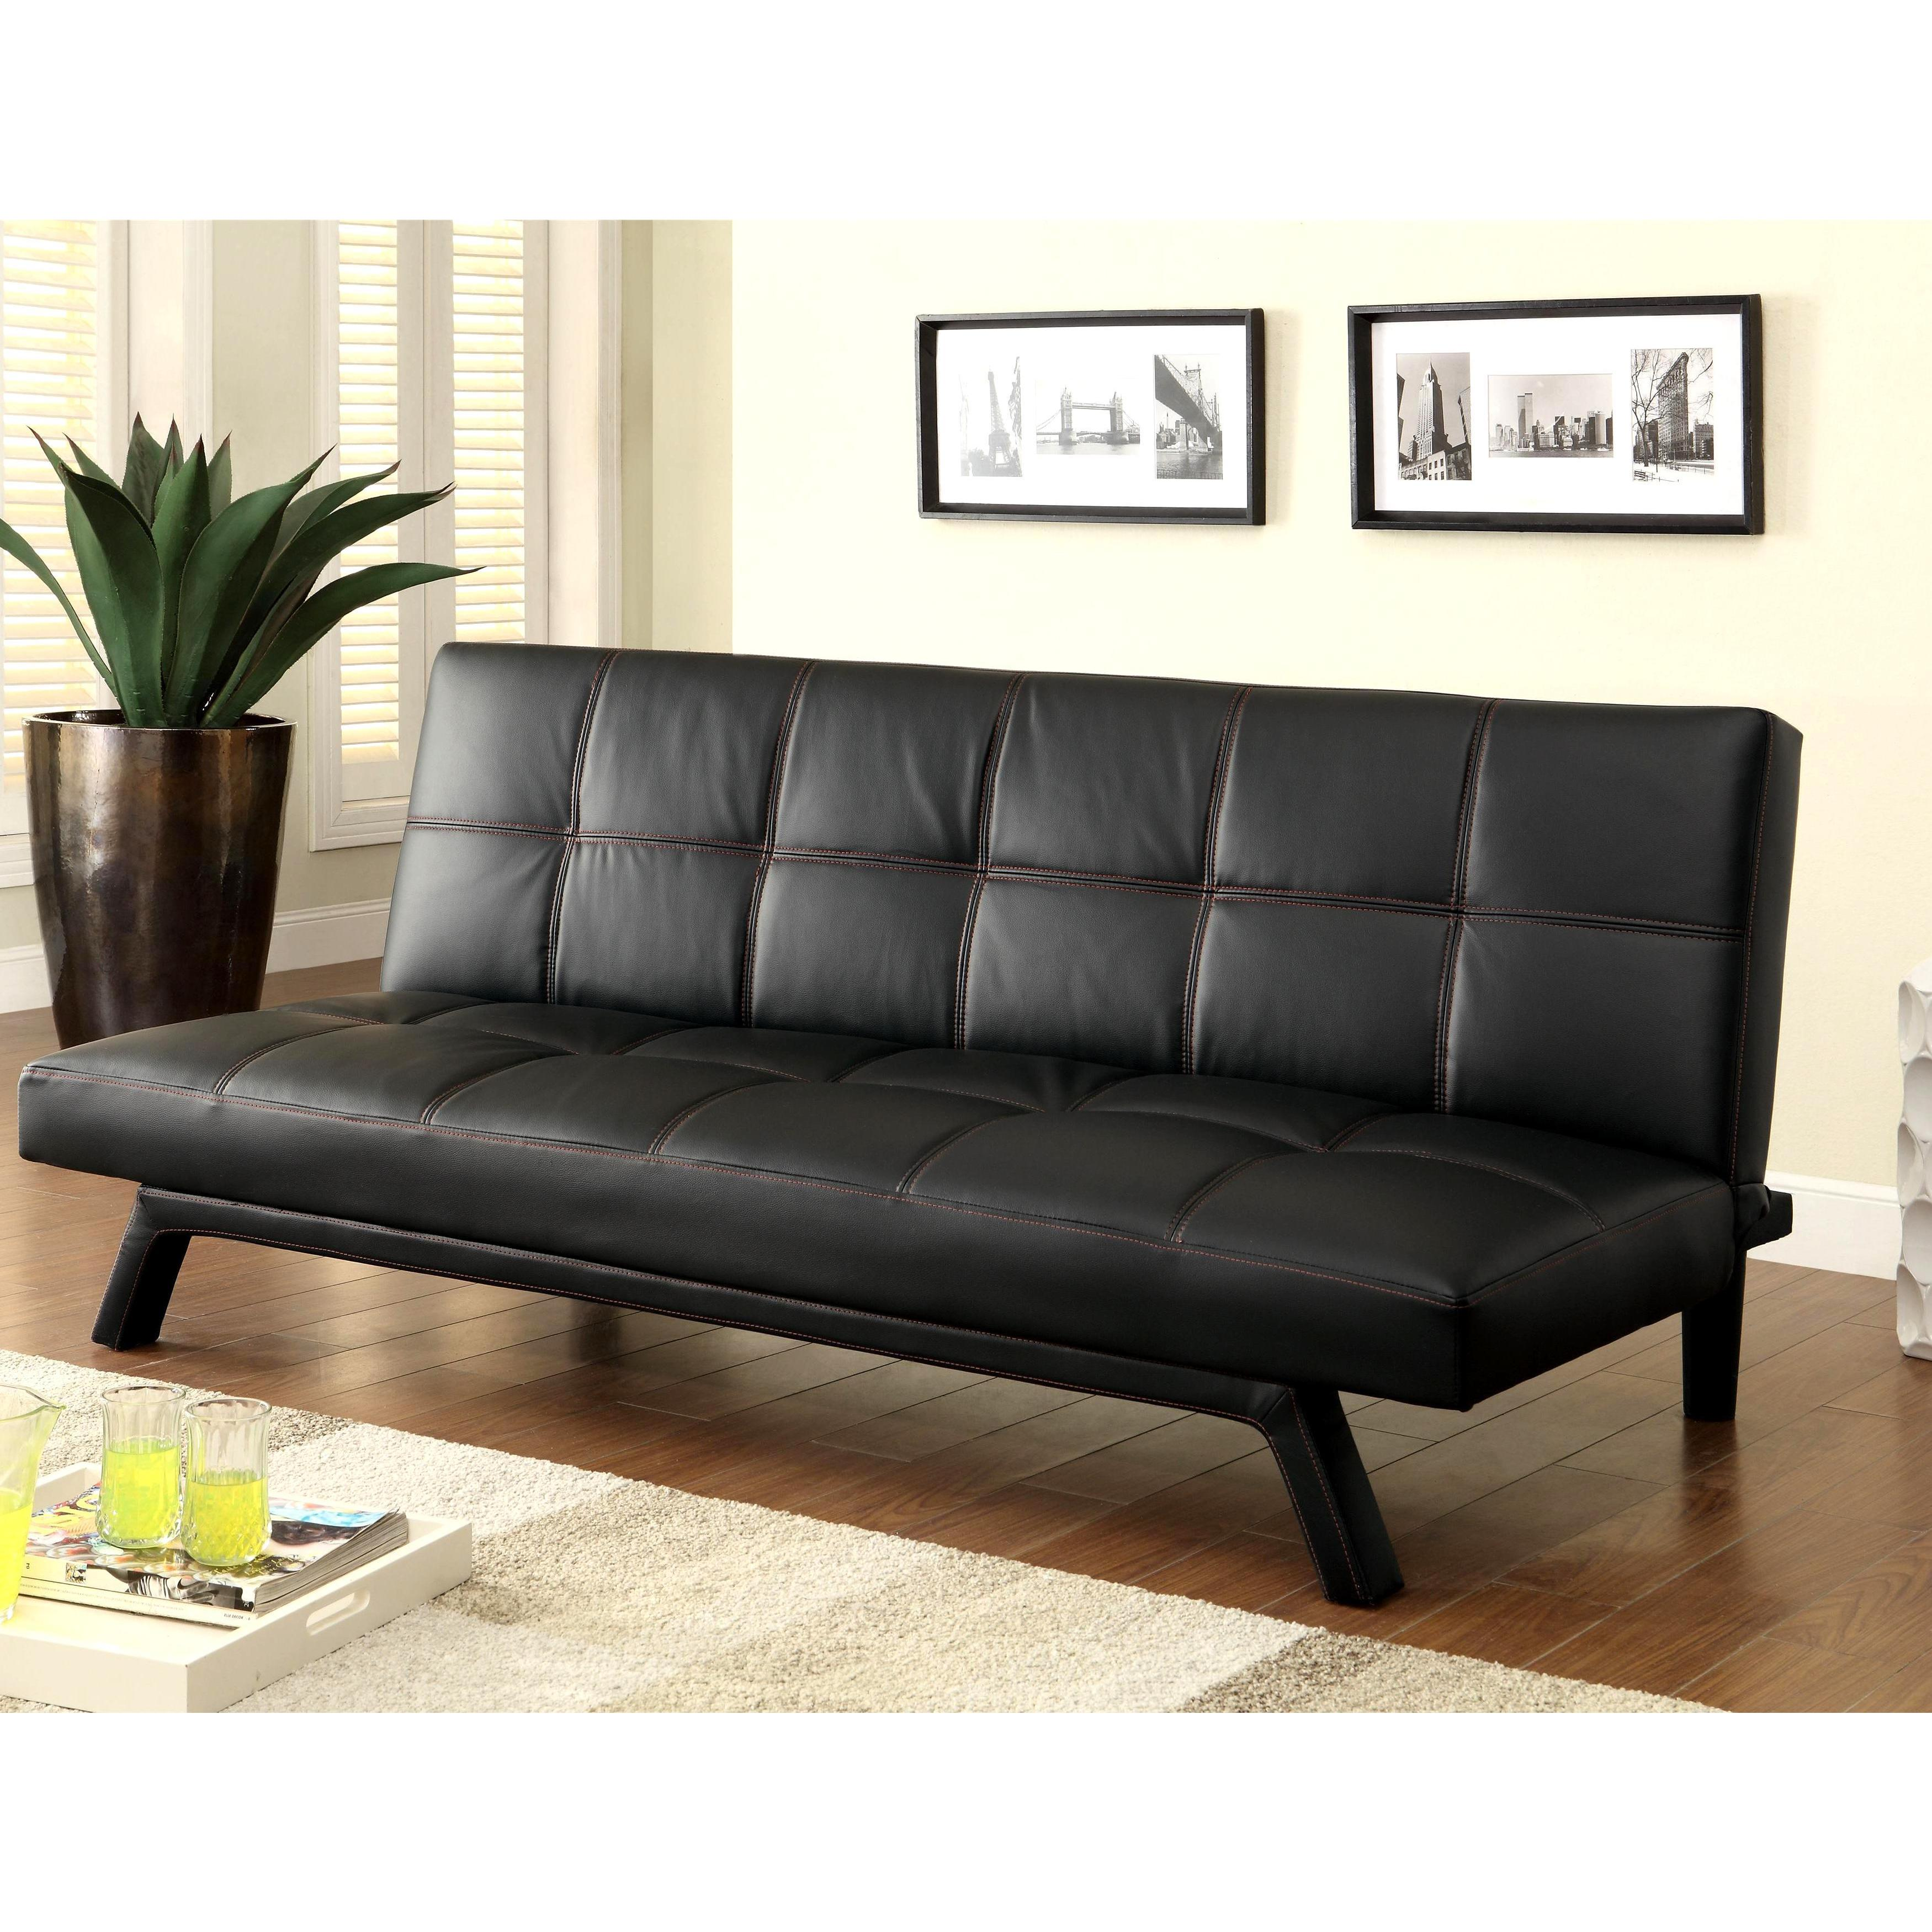 Retro Design Black with Red Stitching Convertible Sofa Sl...